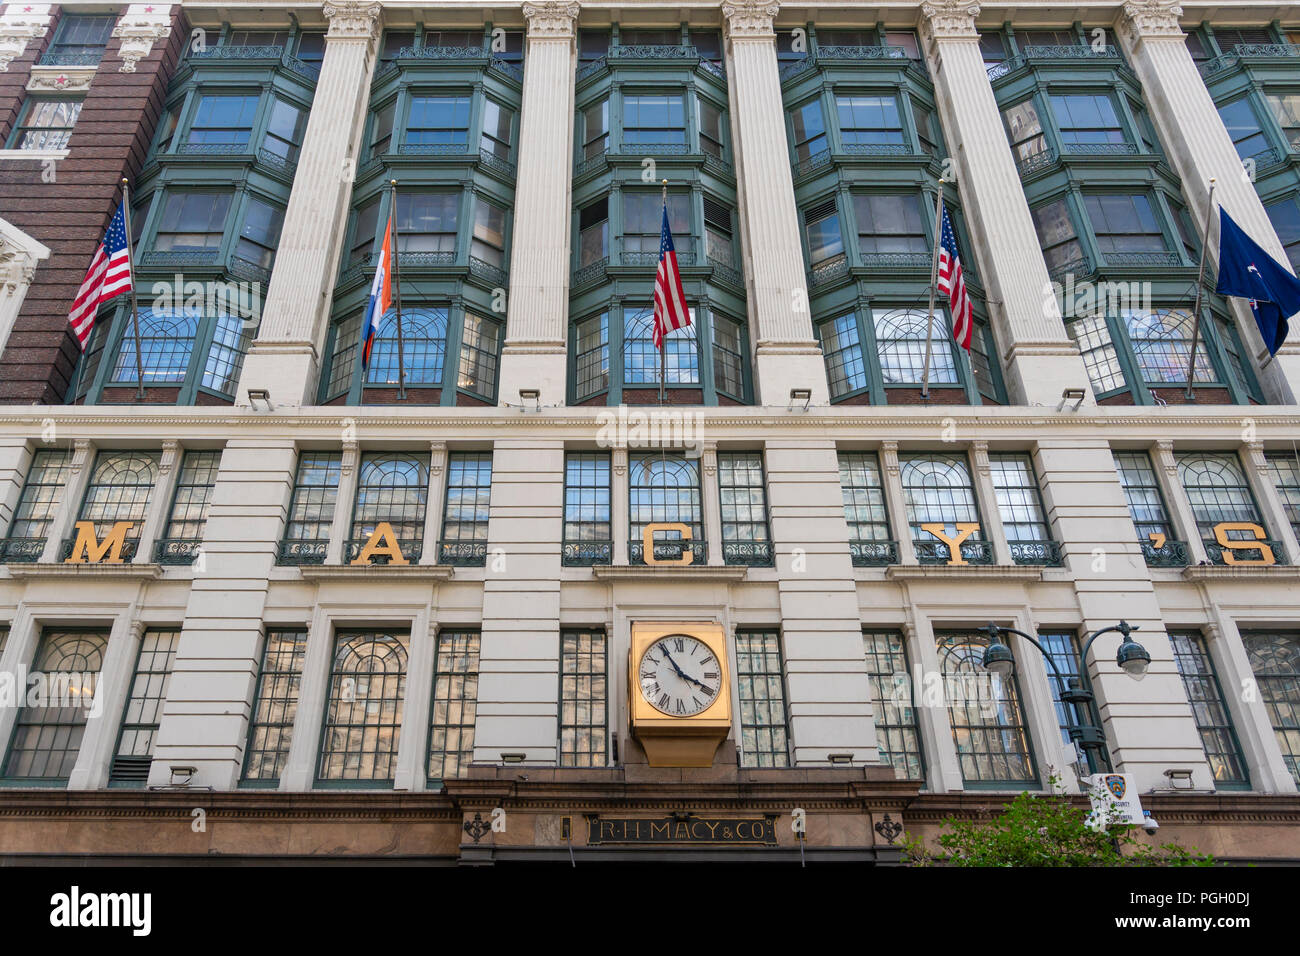 Macy's department store in New York City - Stock Image